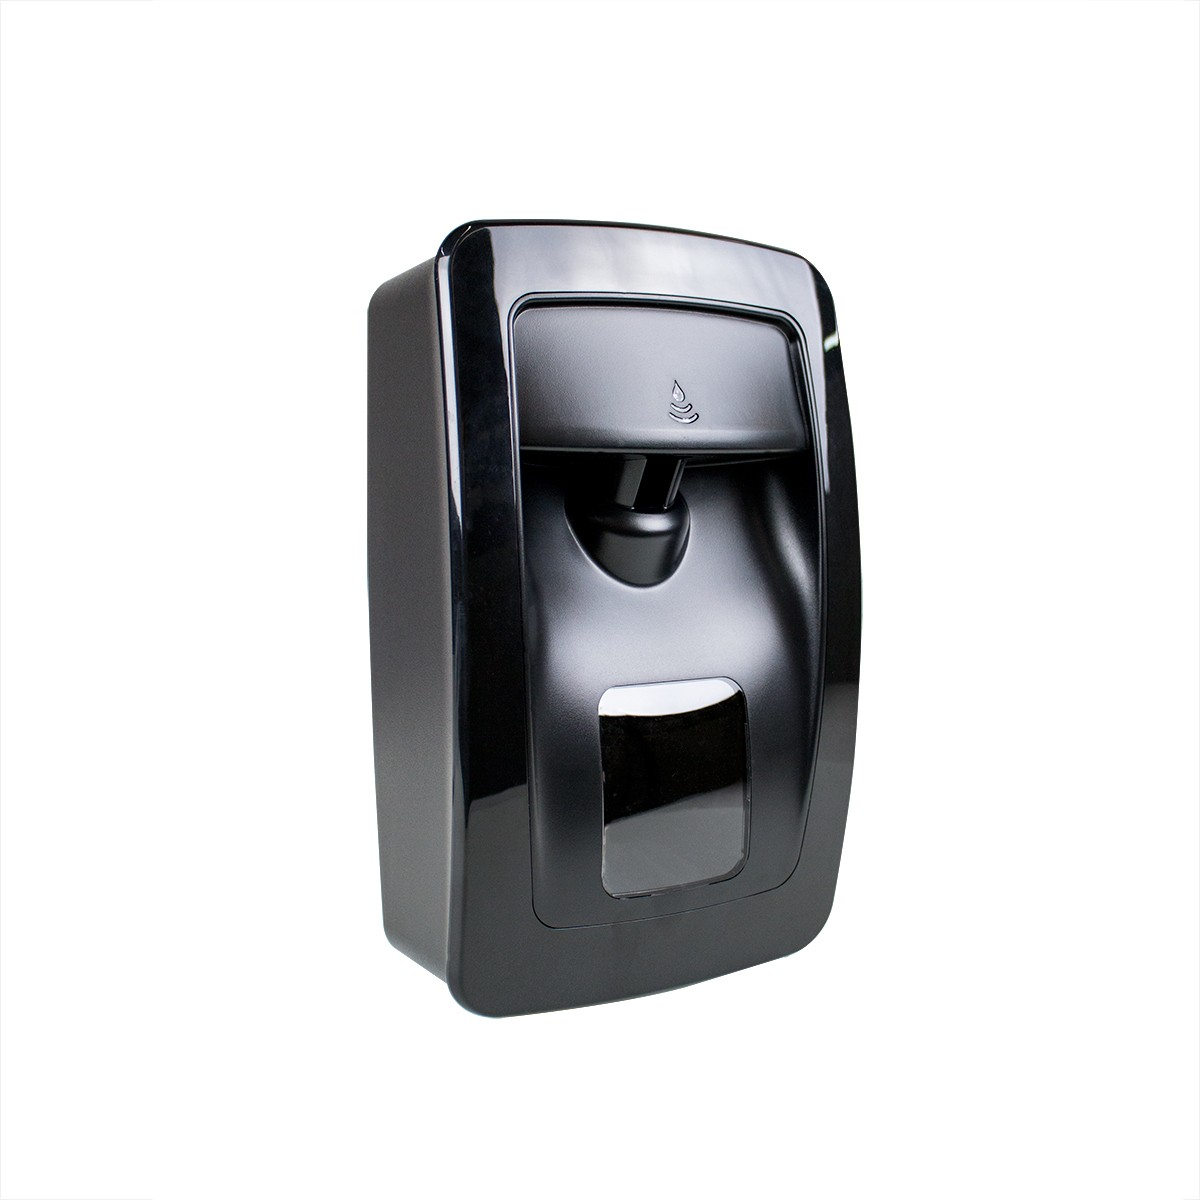 Black Automatic Soap Dispenser Automatic Foaming Soap Dispenser Ultrasource Food